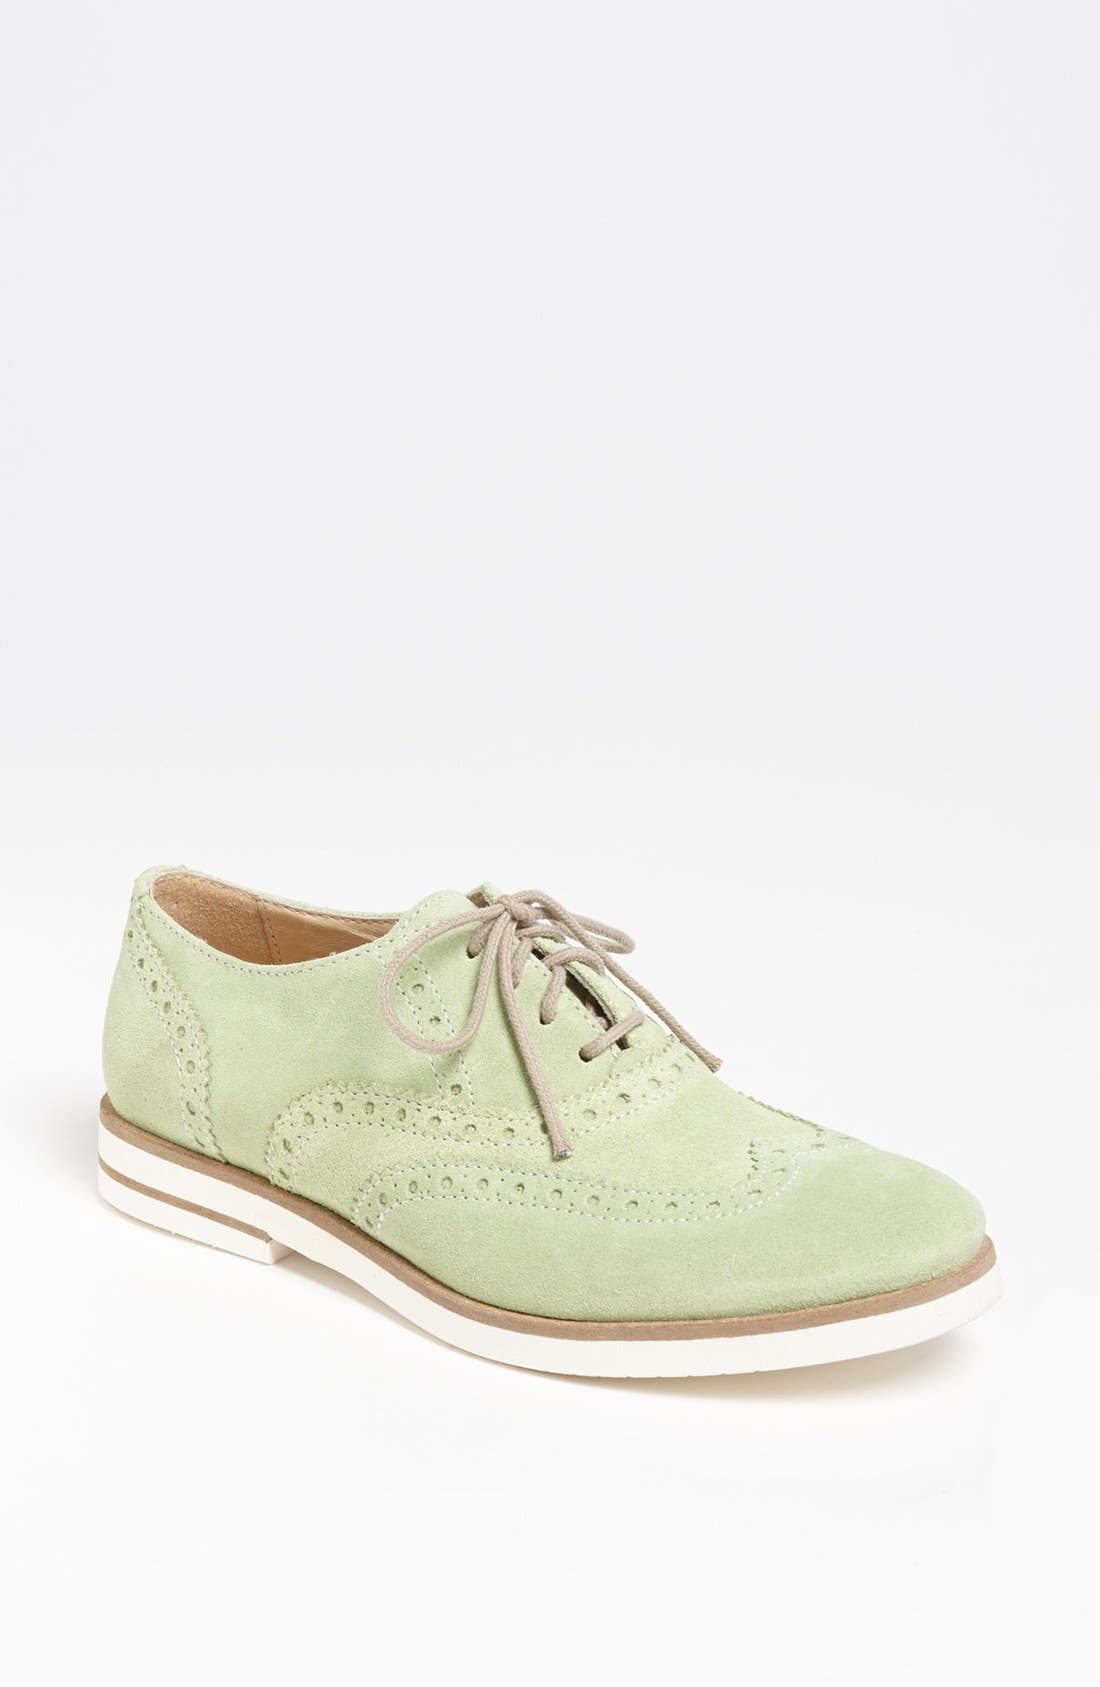 Alternate Image 1 Selected - J.P. Camps Suede Oxford